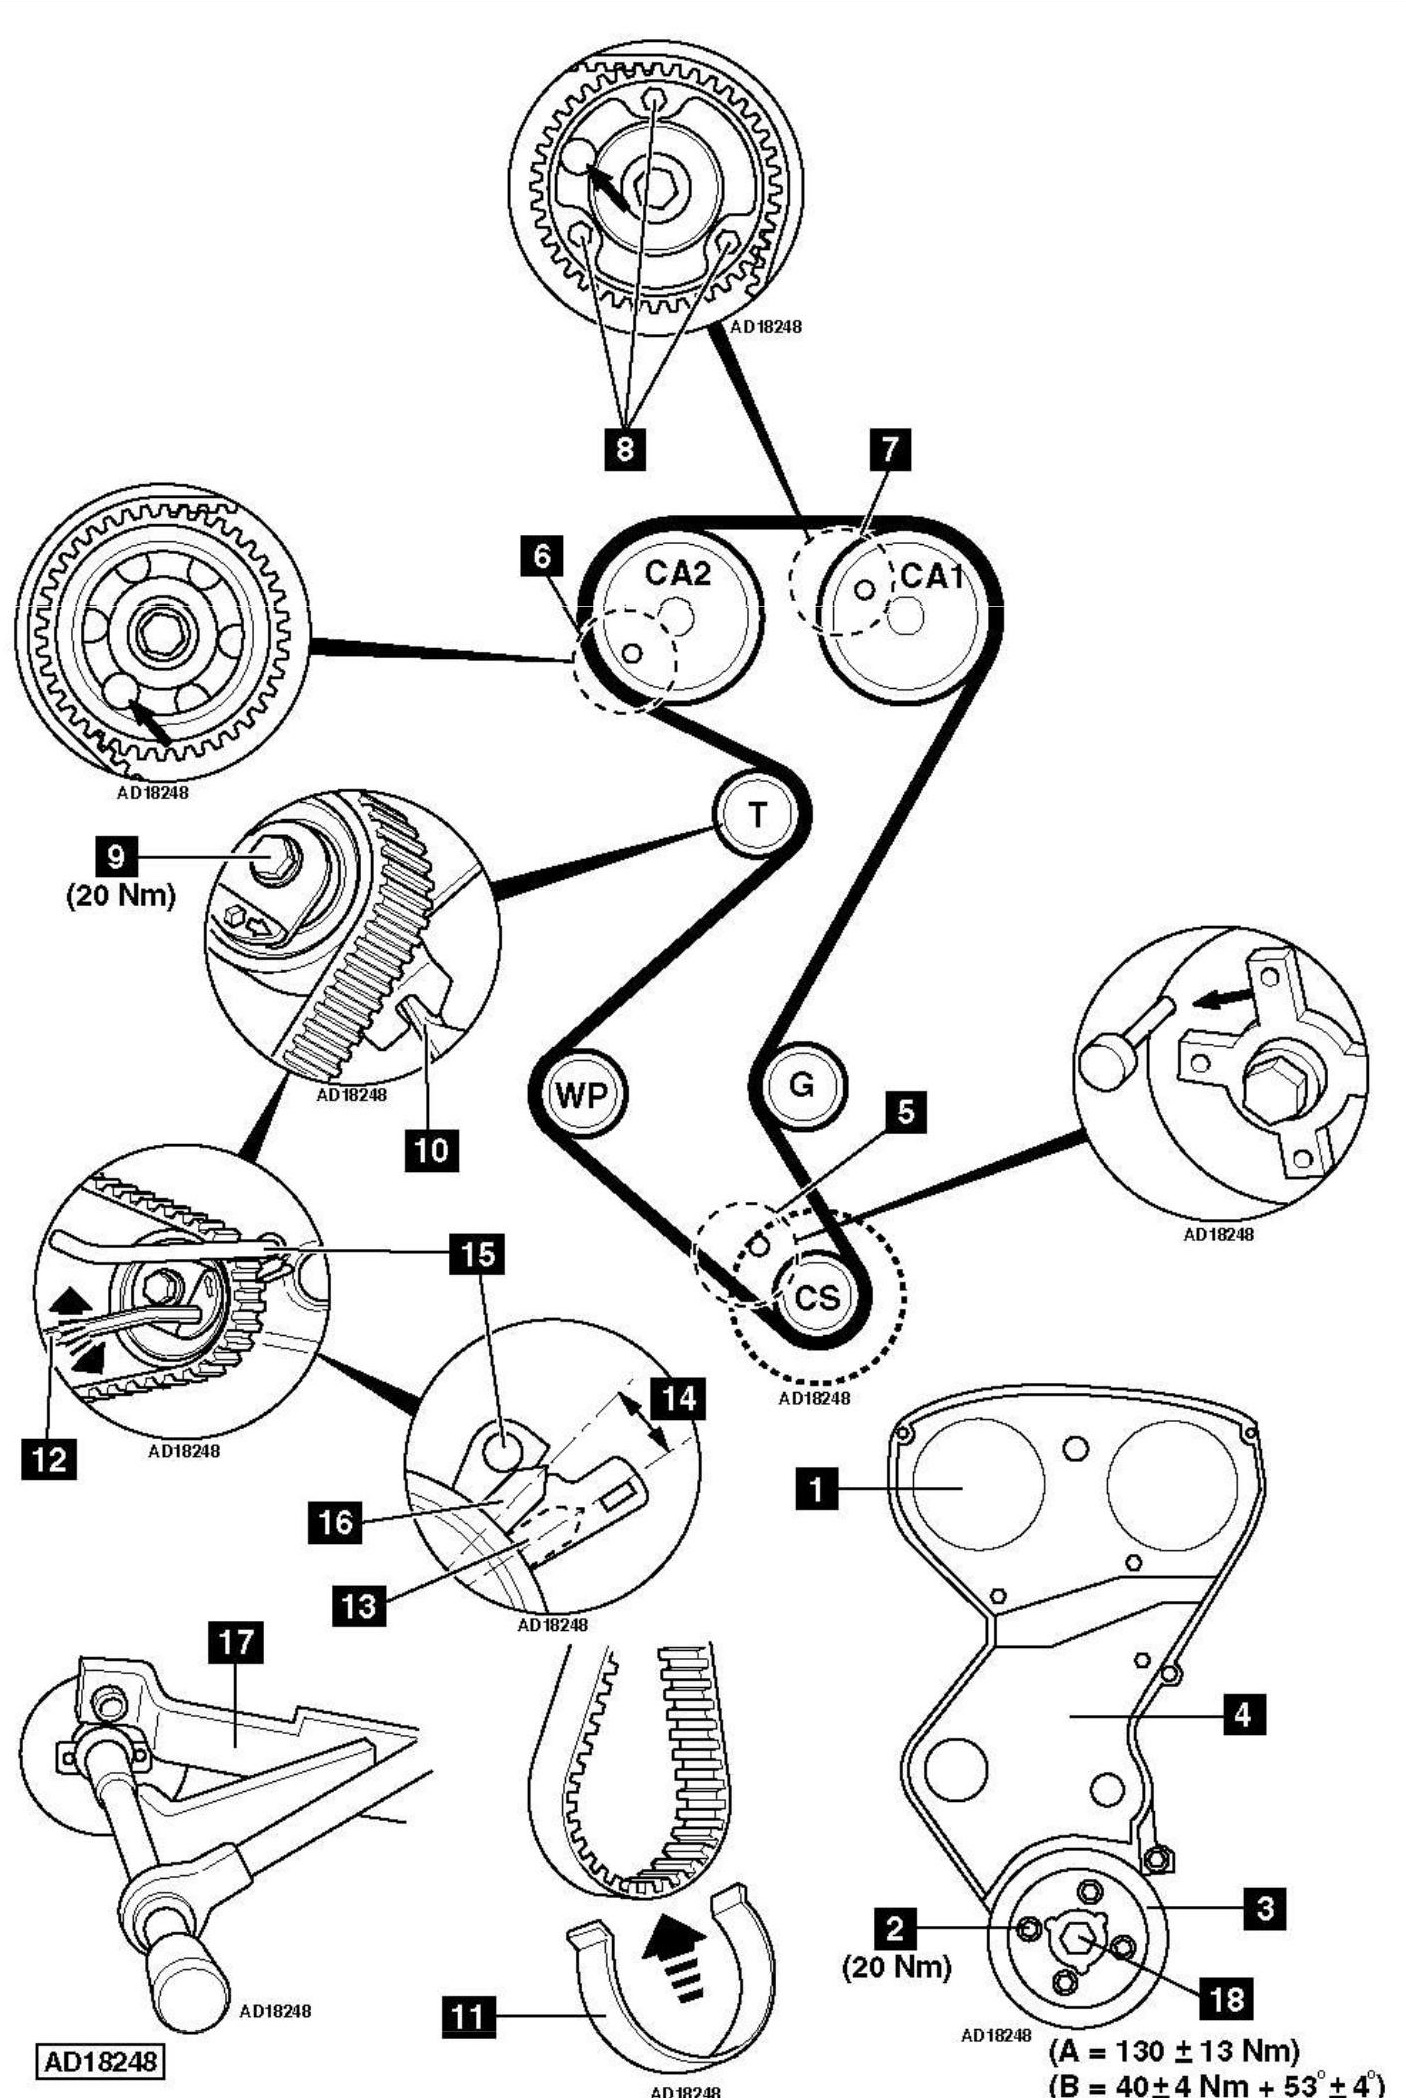 Chrysler 300c Engine Diagram likewise 2005 Chrysler 300c Hemi Engine Diagram furthermore Jeep Grand Cherokee Wk 2008 Grand Cherokee Introduction For 2006 Dodge Sprinter Serpentine Belt Diagram furthermore 2p10t Routing Diagram Serpentine Belt 2008 Dodge Charger also Chrysler 300c Hemi Engine. on chrysler 300c serpentine belt diagram